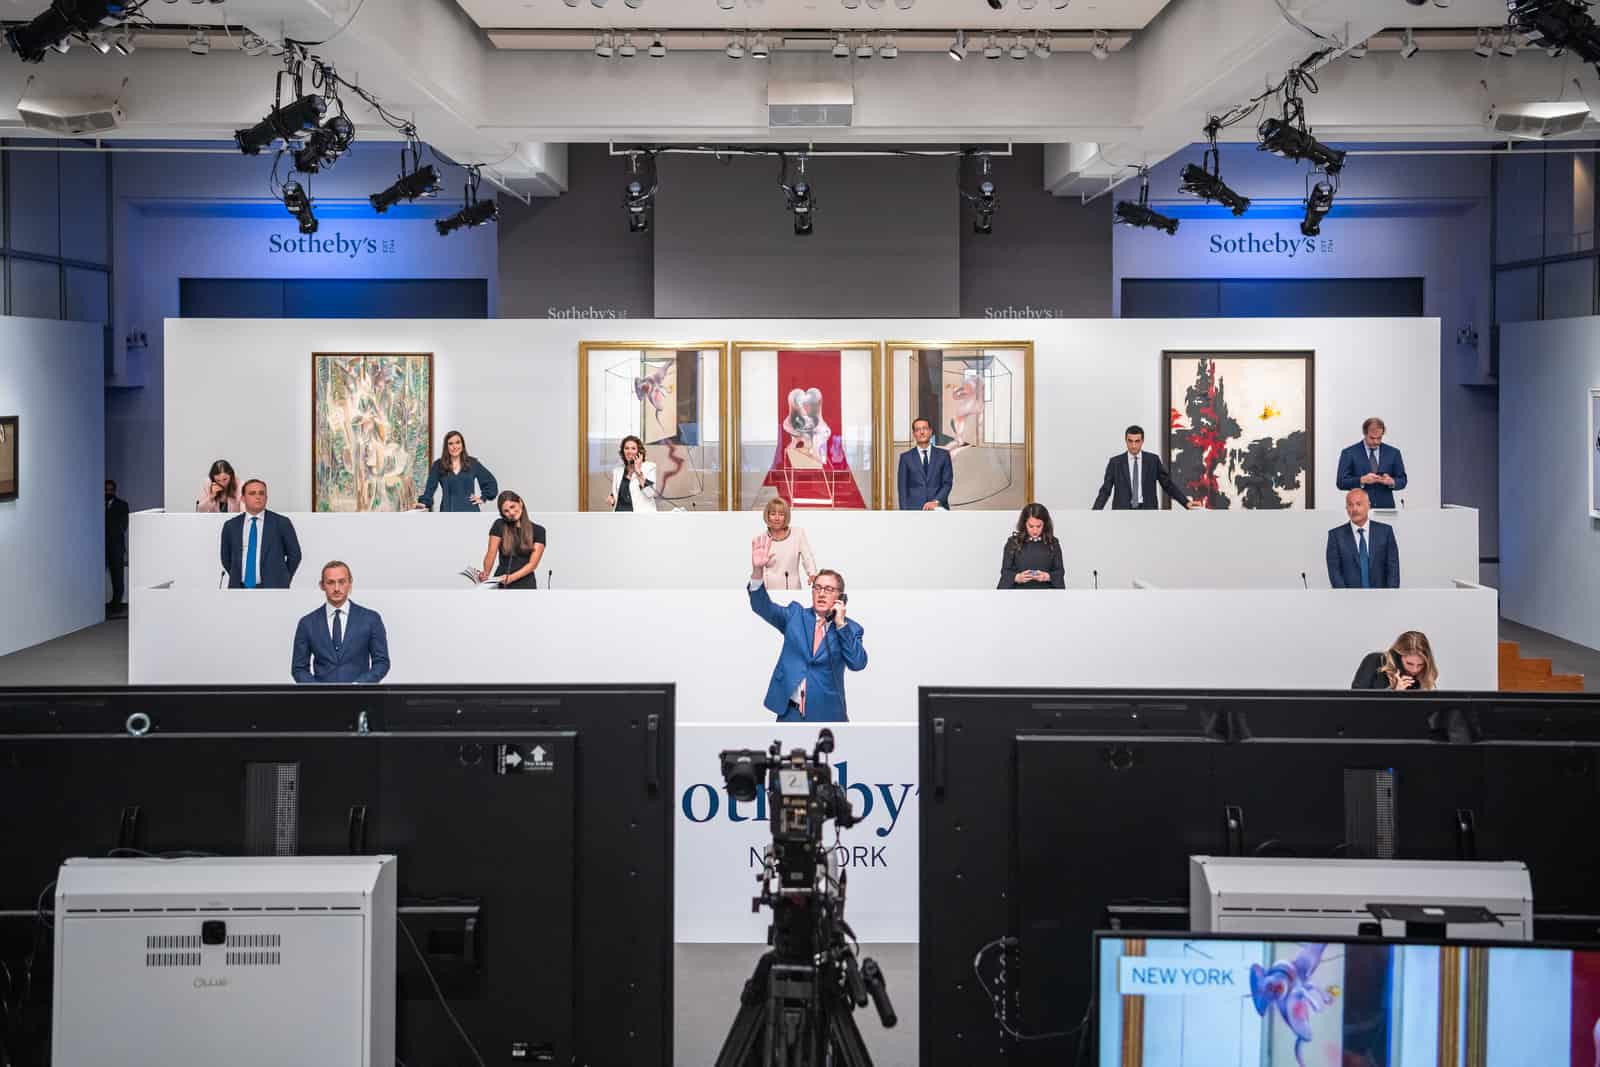 Sotheby's Live Global Auction Event: Sotheby's specialists taking phone and online bids from around the world, Courtesy Sotheby's